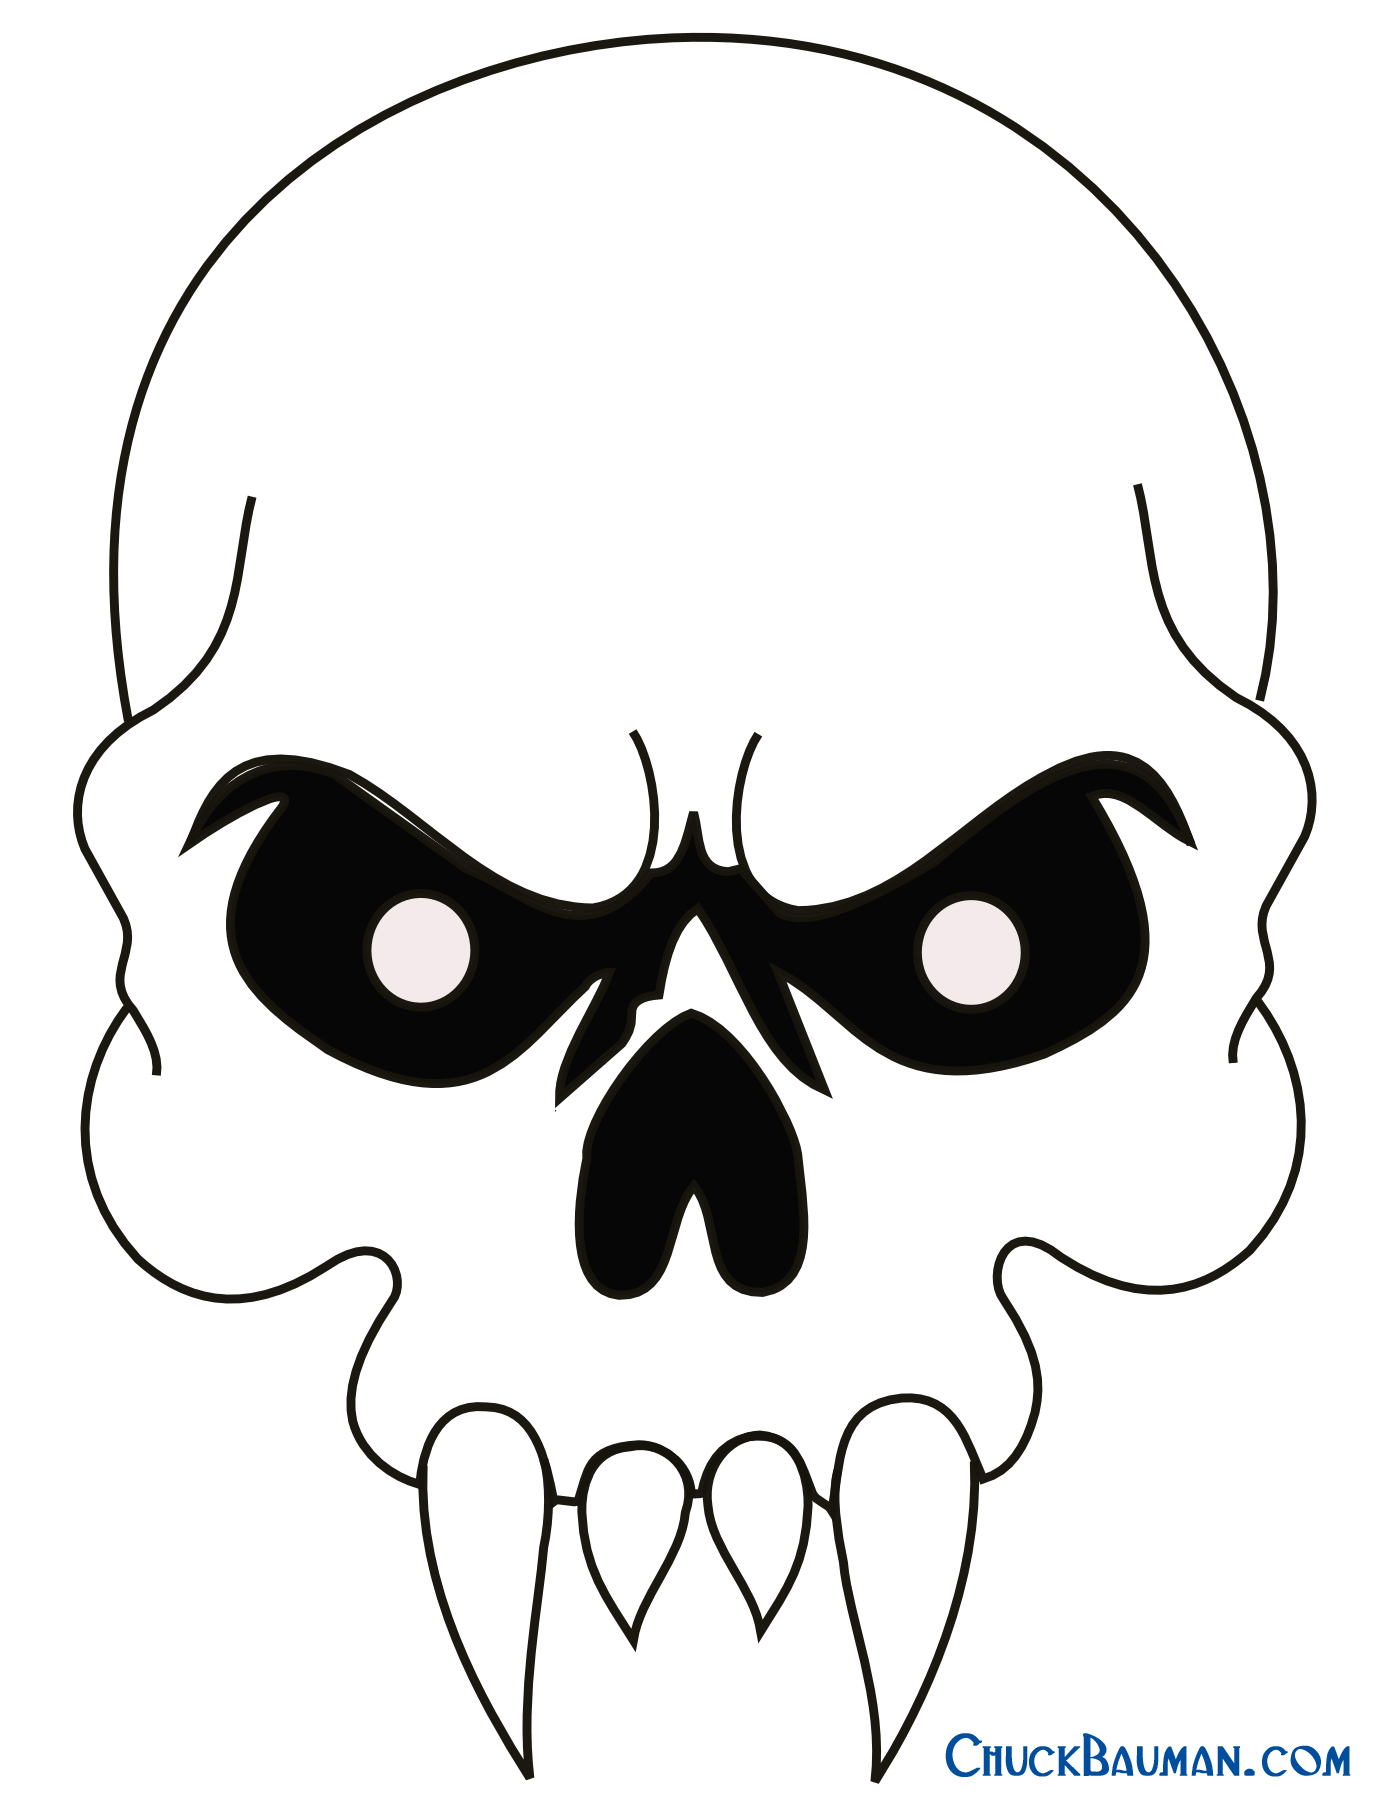 Post fun Halloween Worksheets 67786 additionally Post free Printable Skull Stencils 367260 in addition Post free Printable Skeleton Worksheets 280891 besides Post 5 Letter Words Worksheets 82541 besides Post about Me Printable Poster 227700. on best free watermark for photos